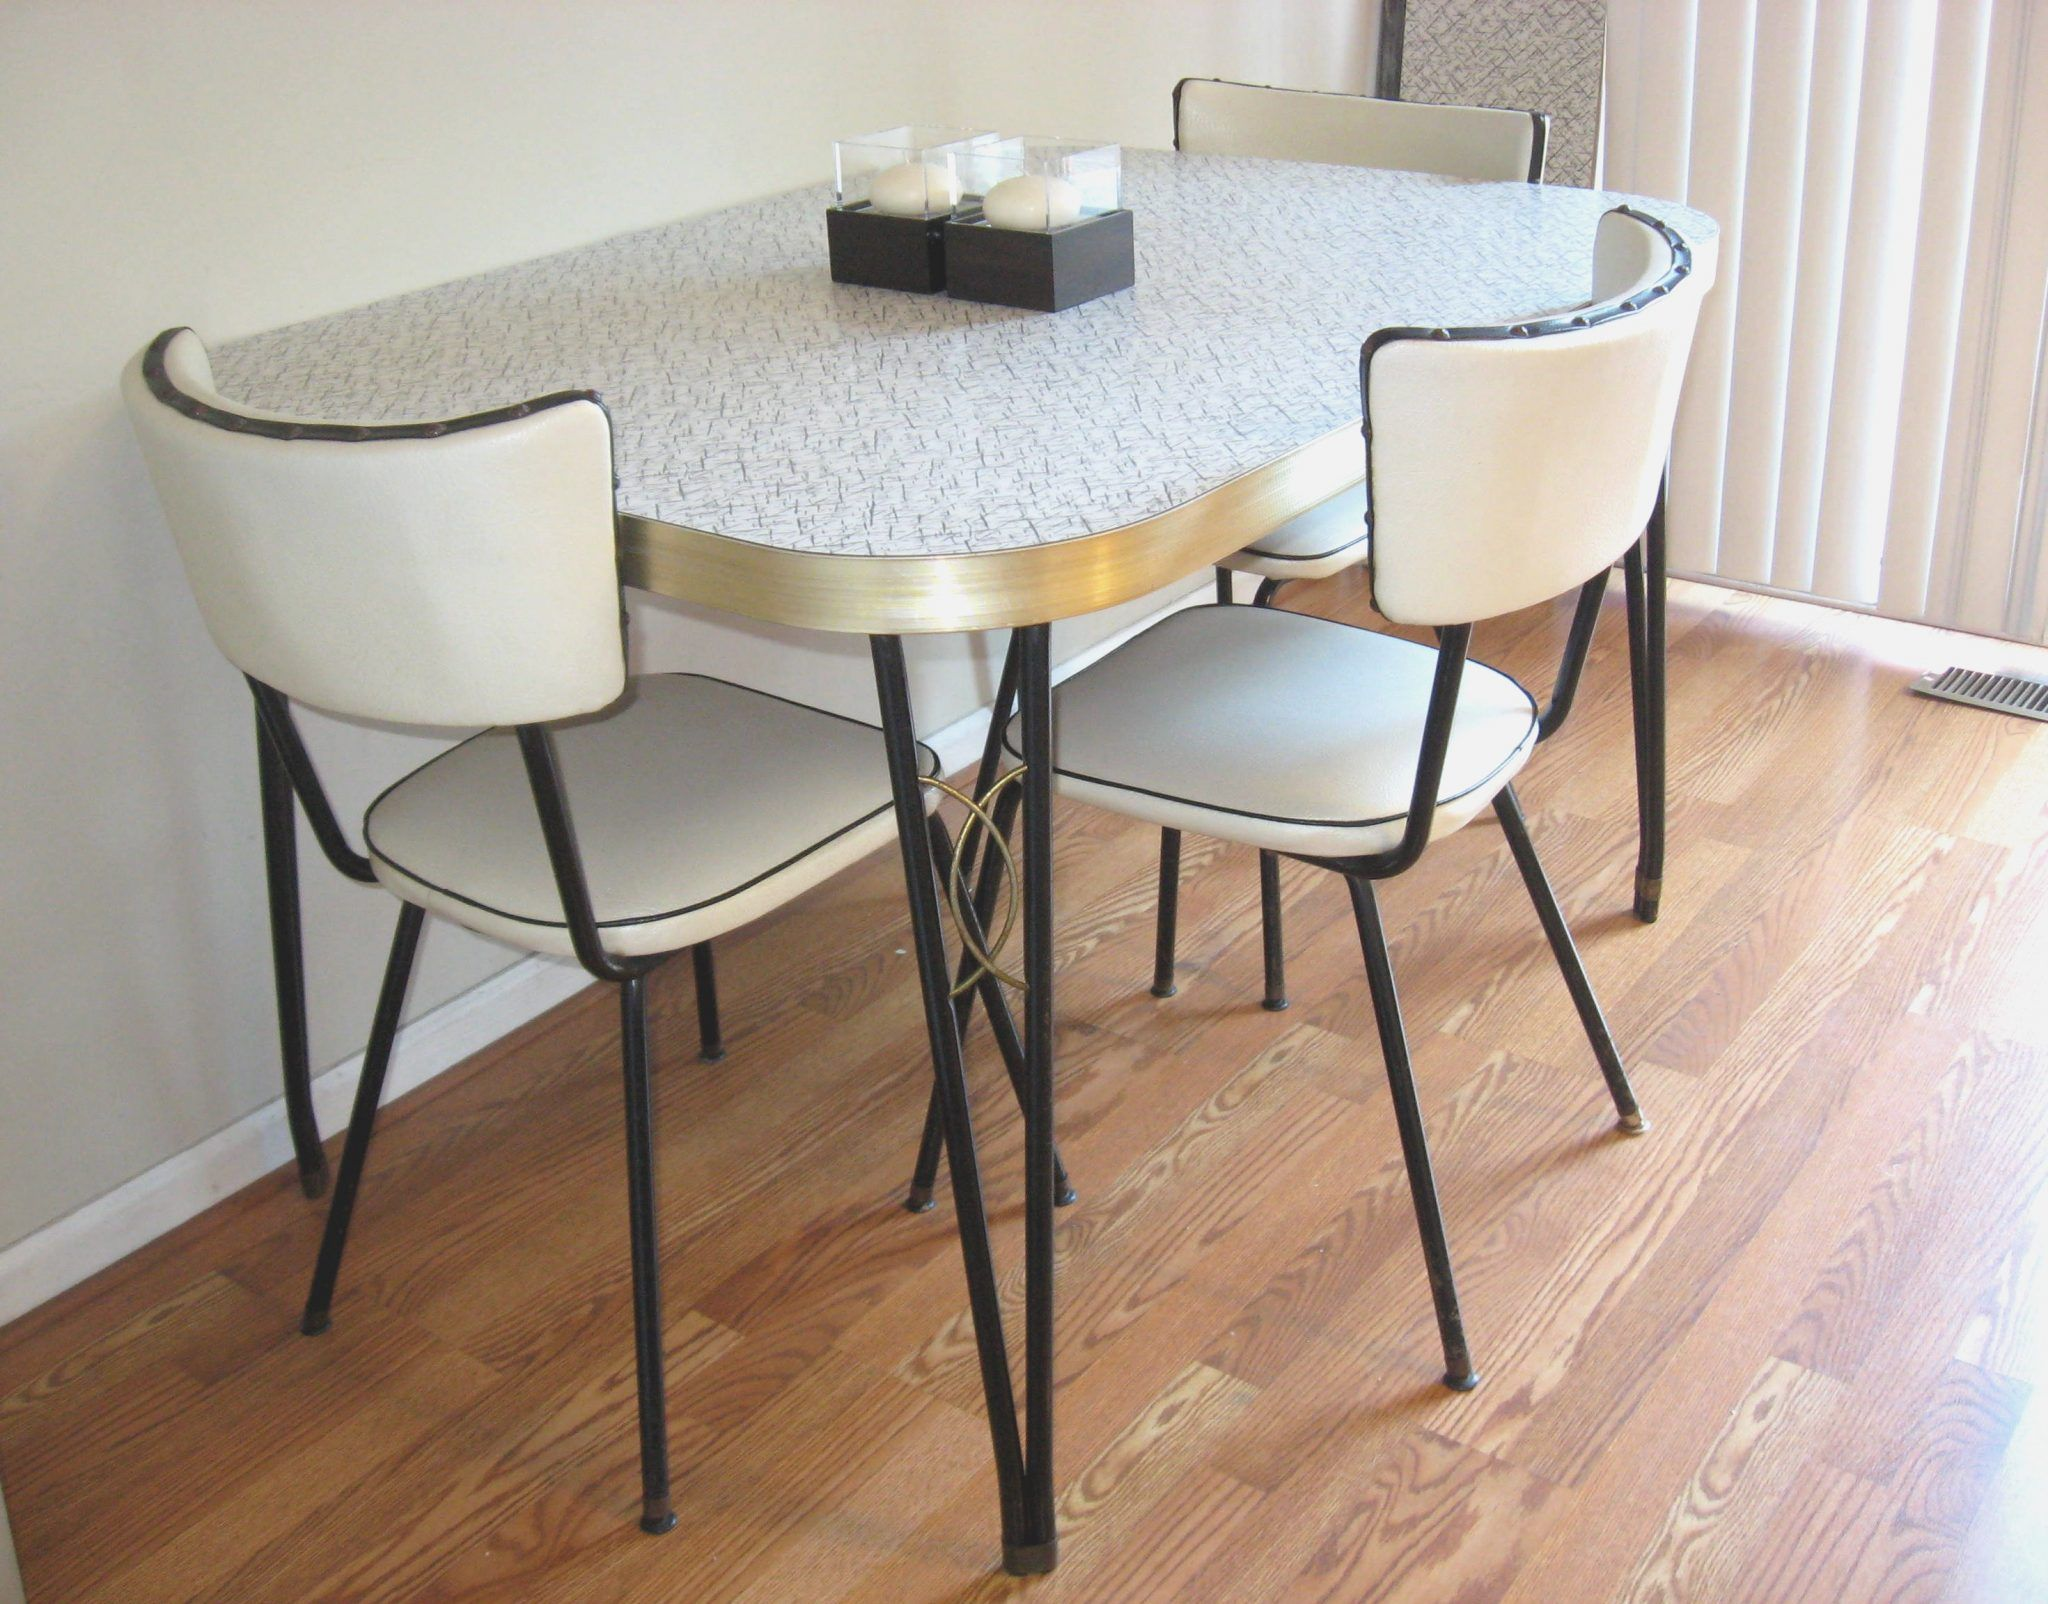 Kitchen Chairs Set Of 4 Chair Cushions Pads Table With Casters